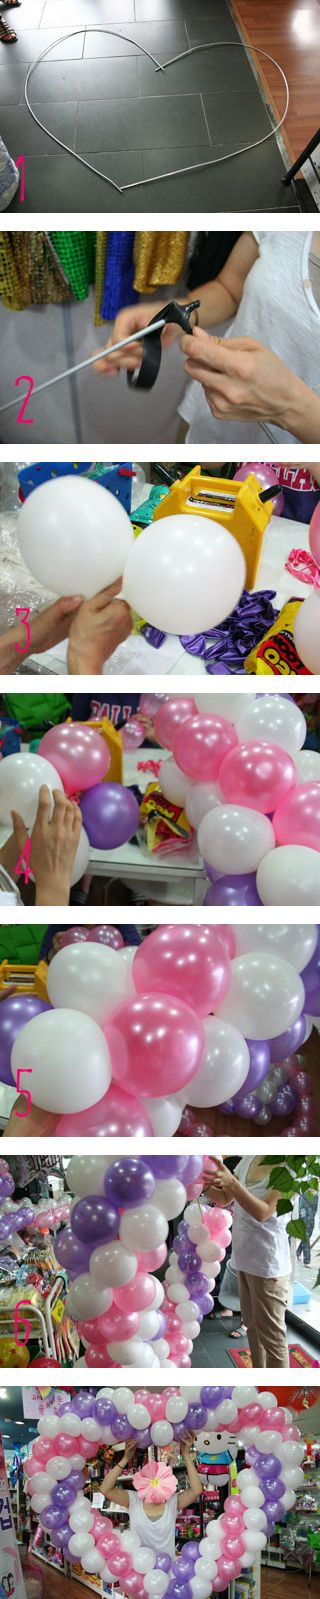 Mays Very Special Day: DIY Love heart balloon decoration